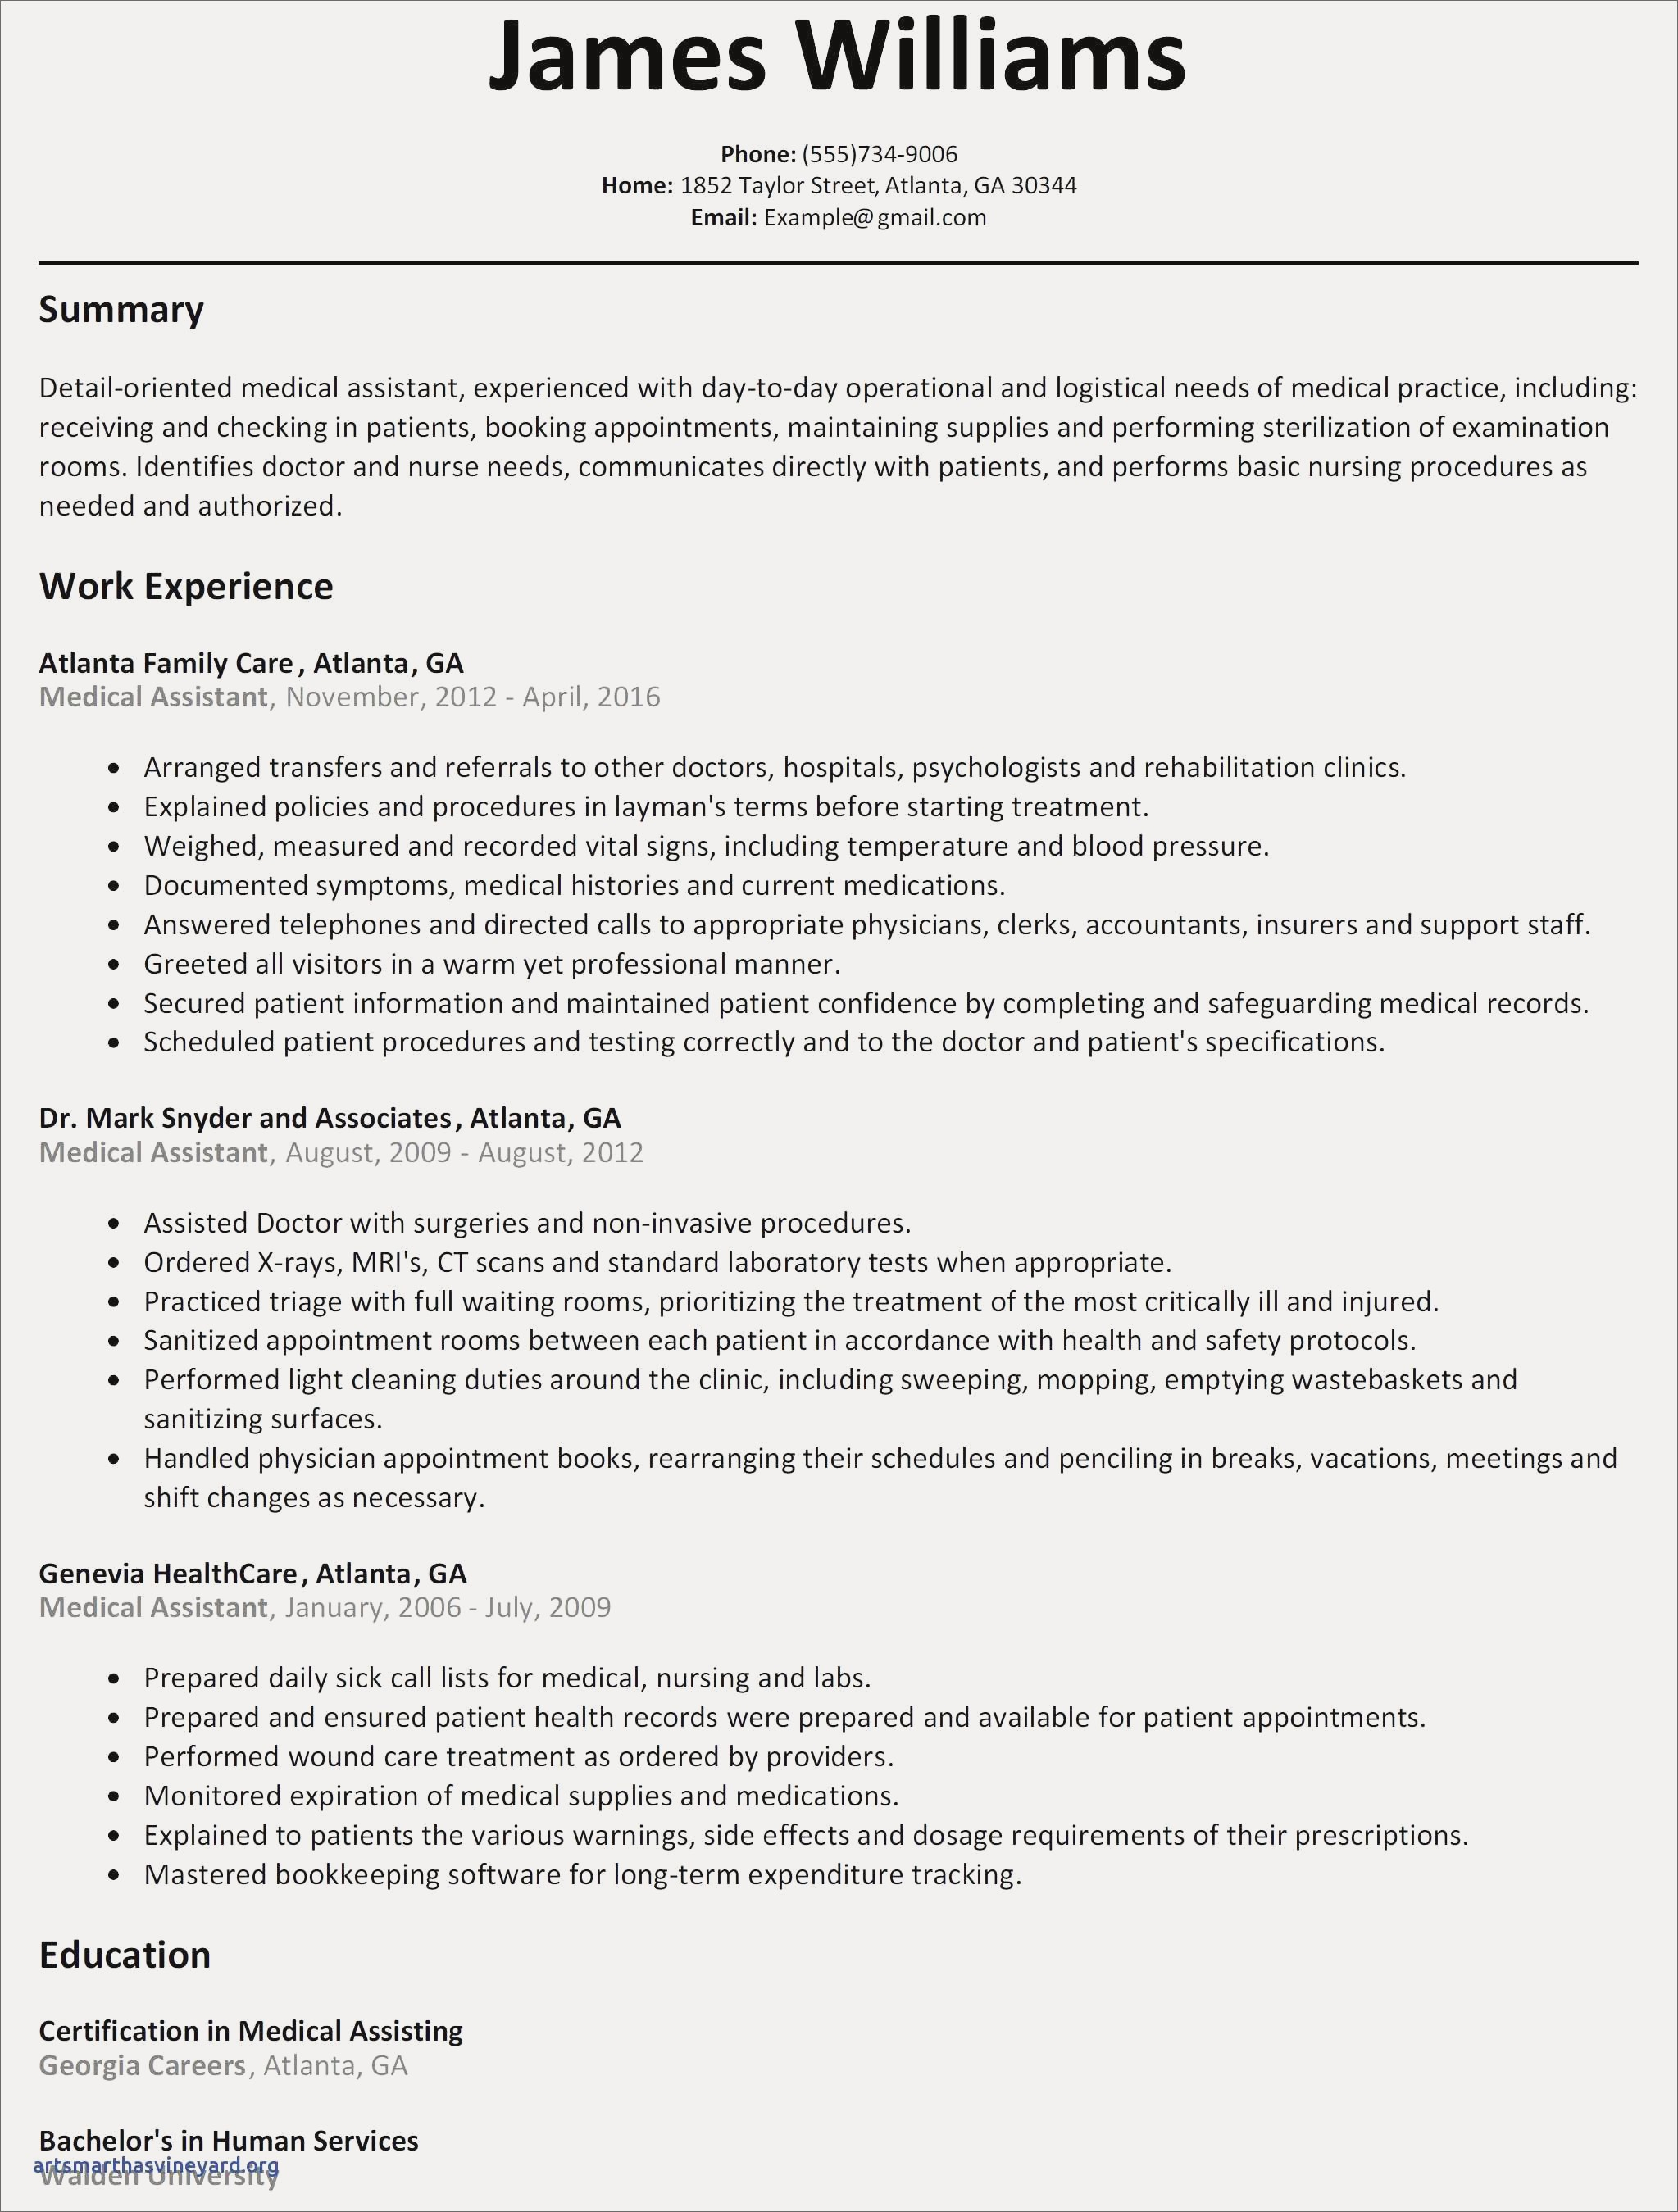 human services resume template example-Human Services Resume Samples Best Retail Resume Sample Awesome Resume Template Free Word New Od From 18-i